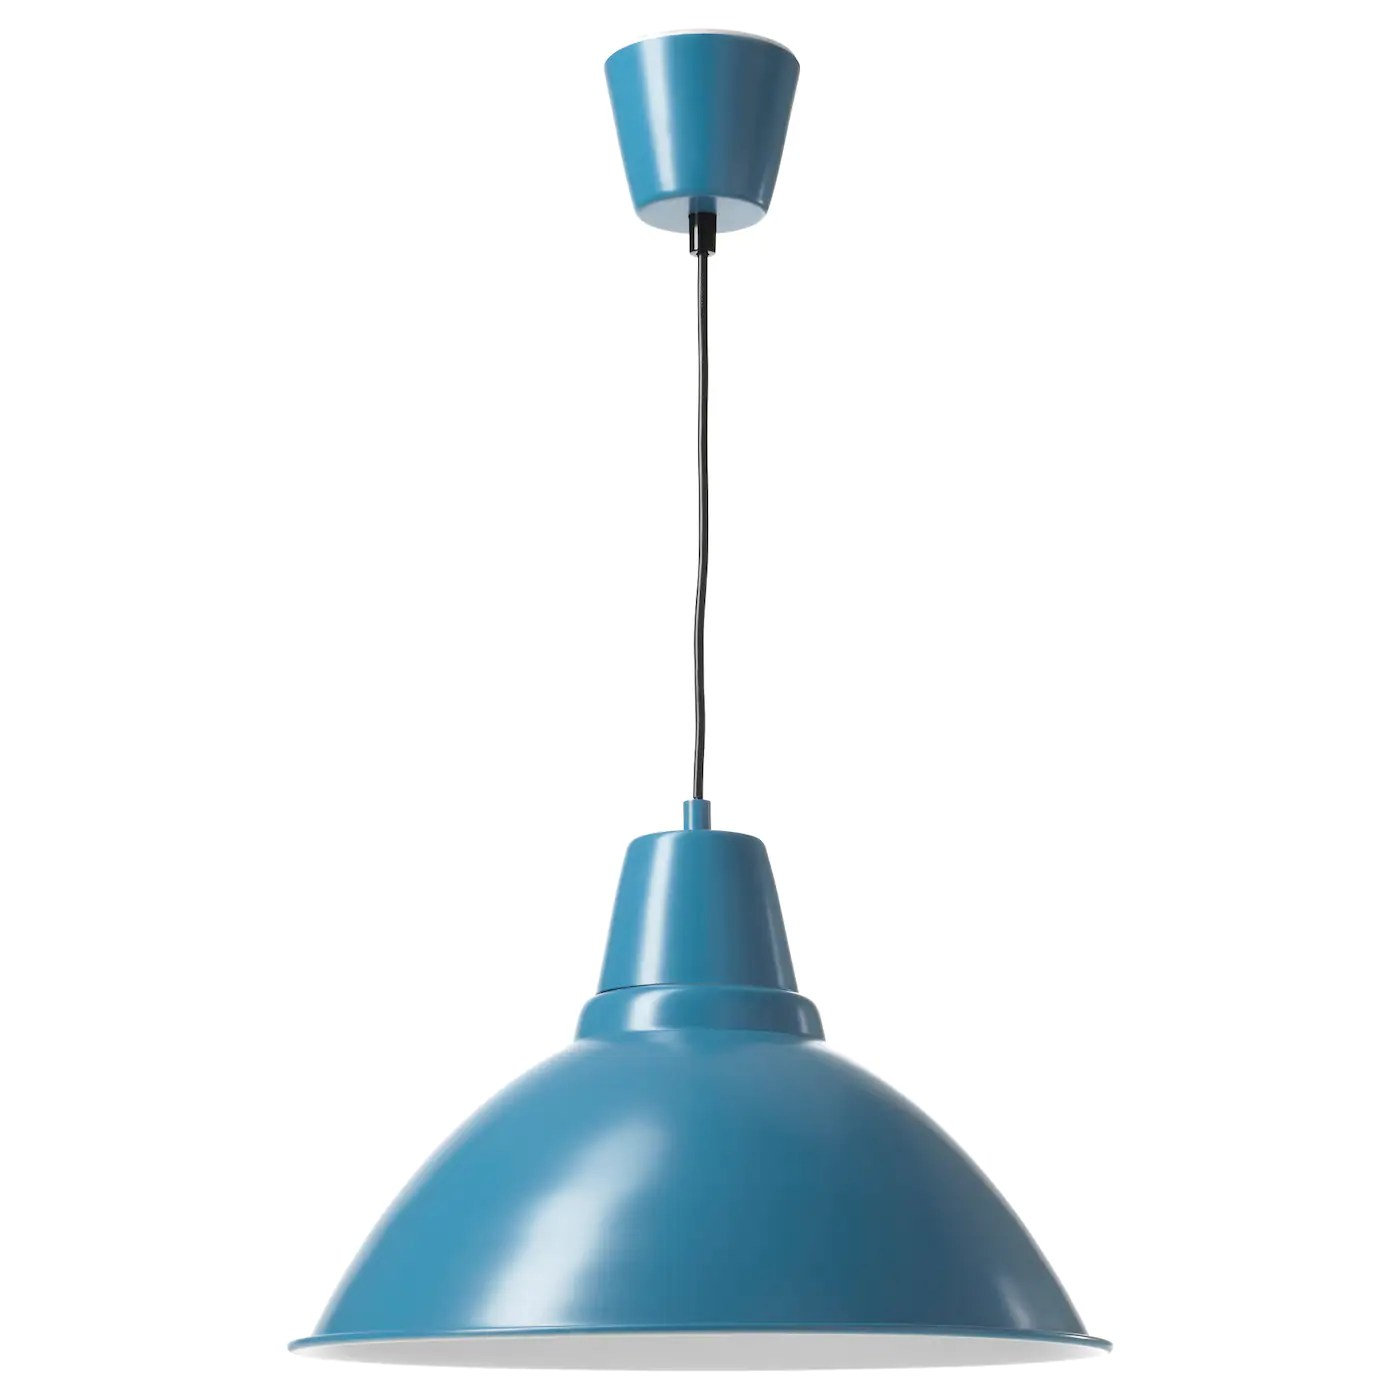 Ikea Light Pendant Foto Pendant Lamp Blue 38 Cm Ikea